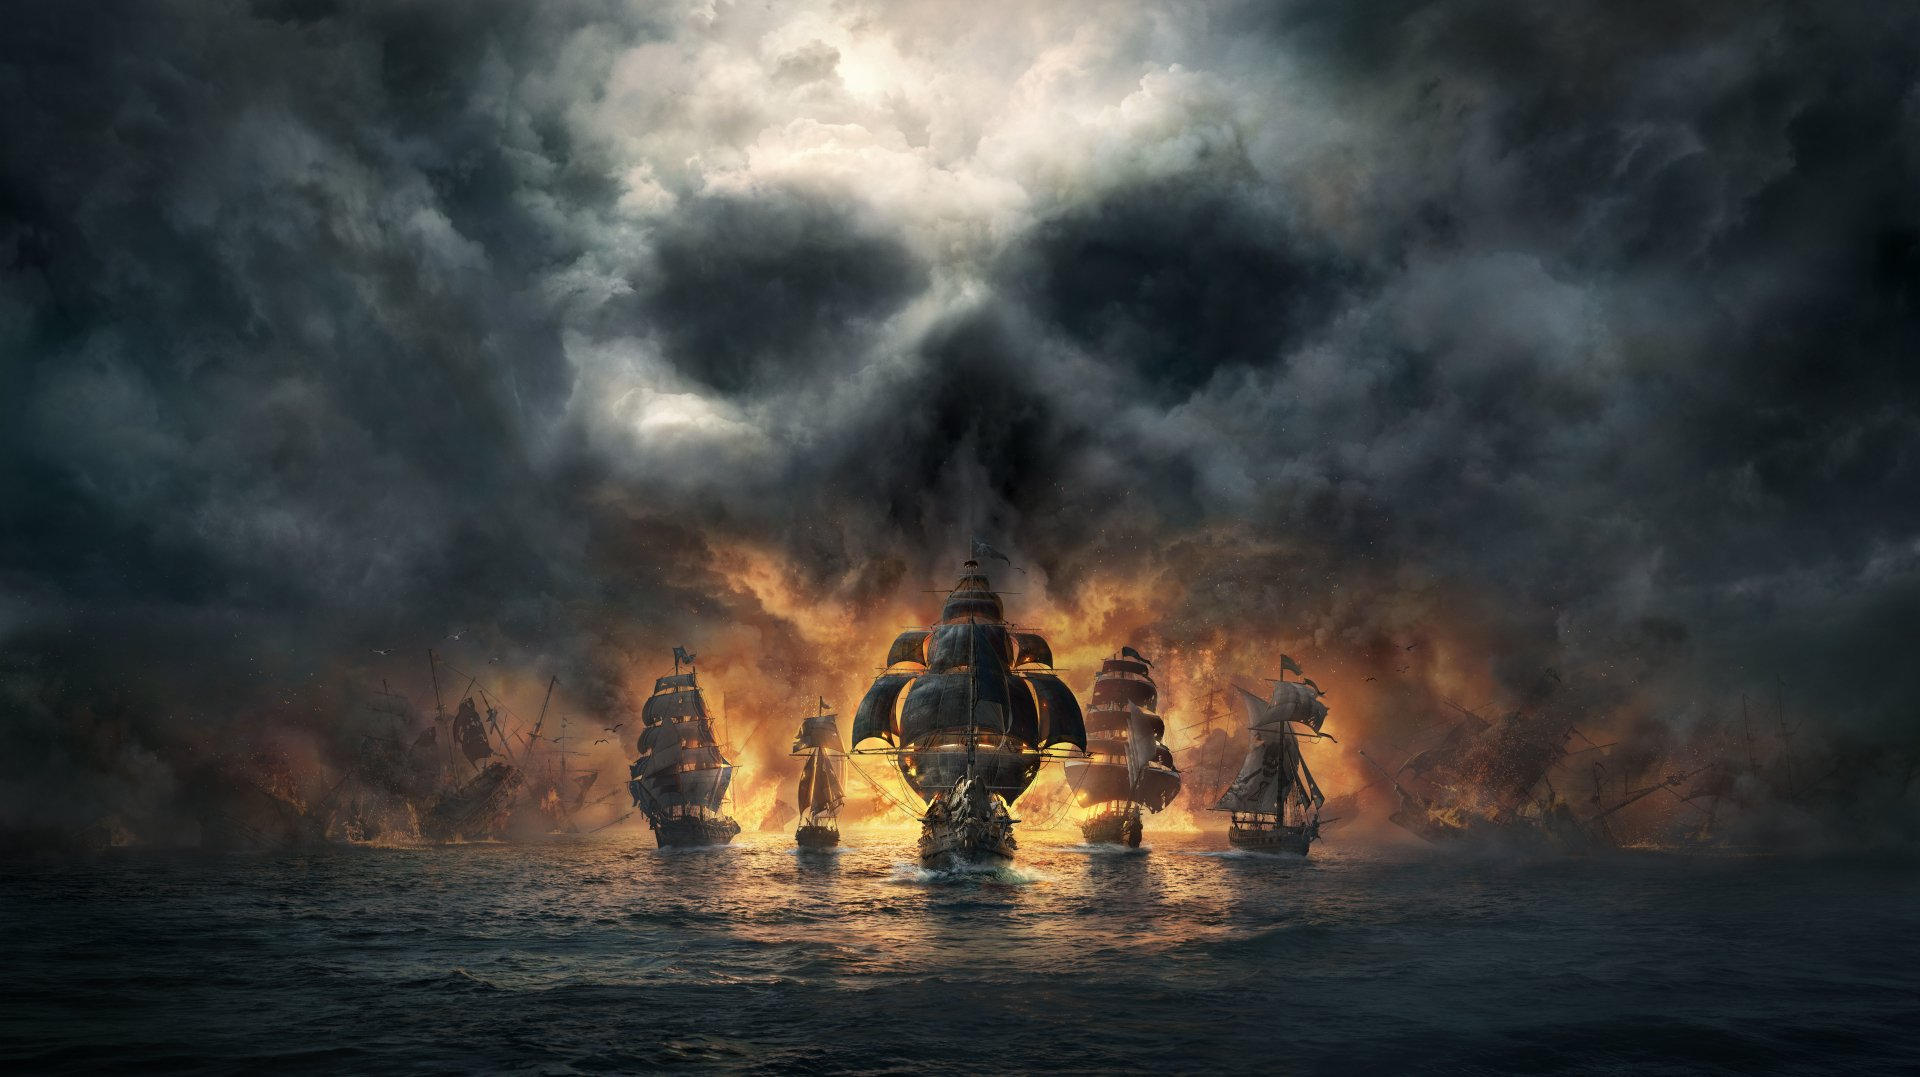 8 4k Ultra Hd Pirate Ship Wallpapers Background Images Wallpaper Abyss